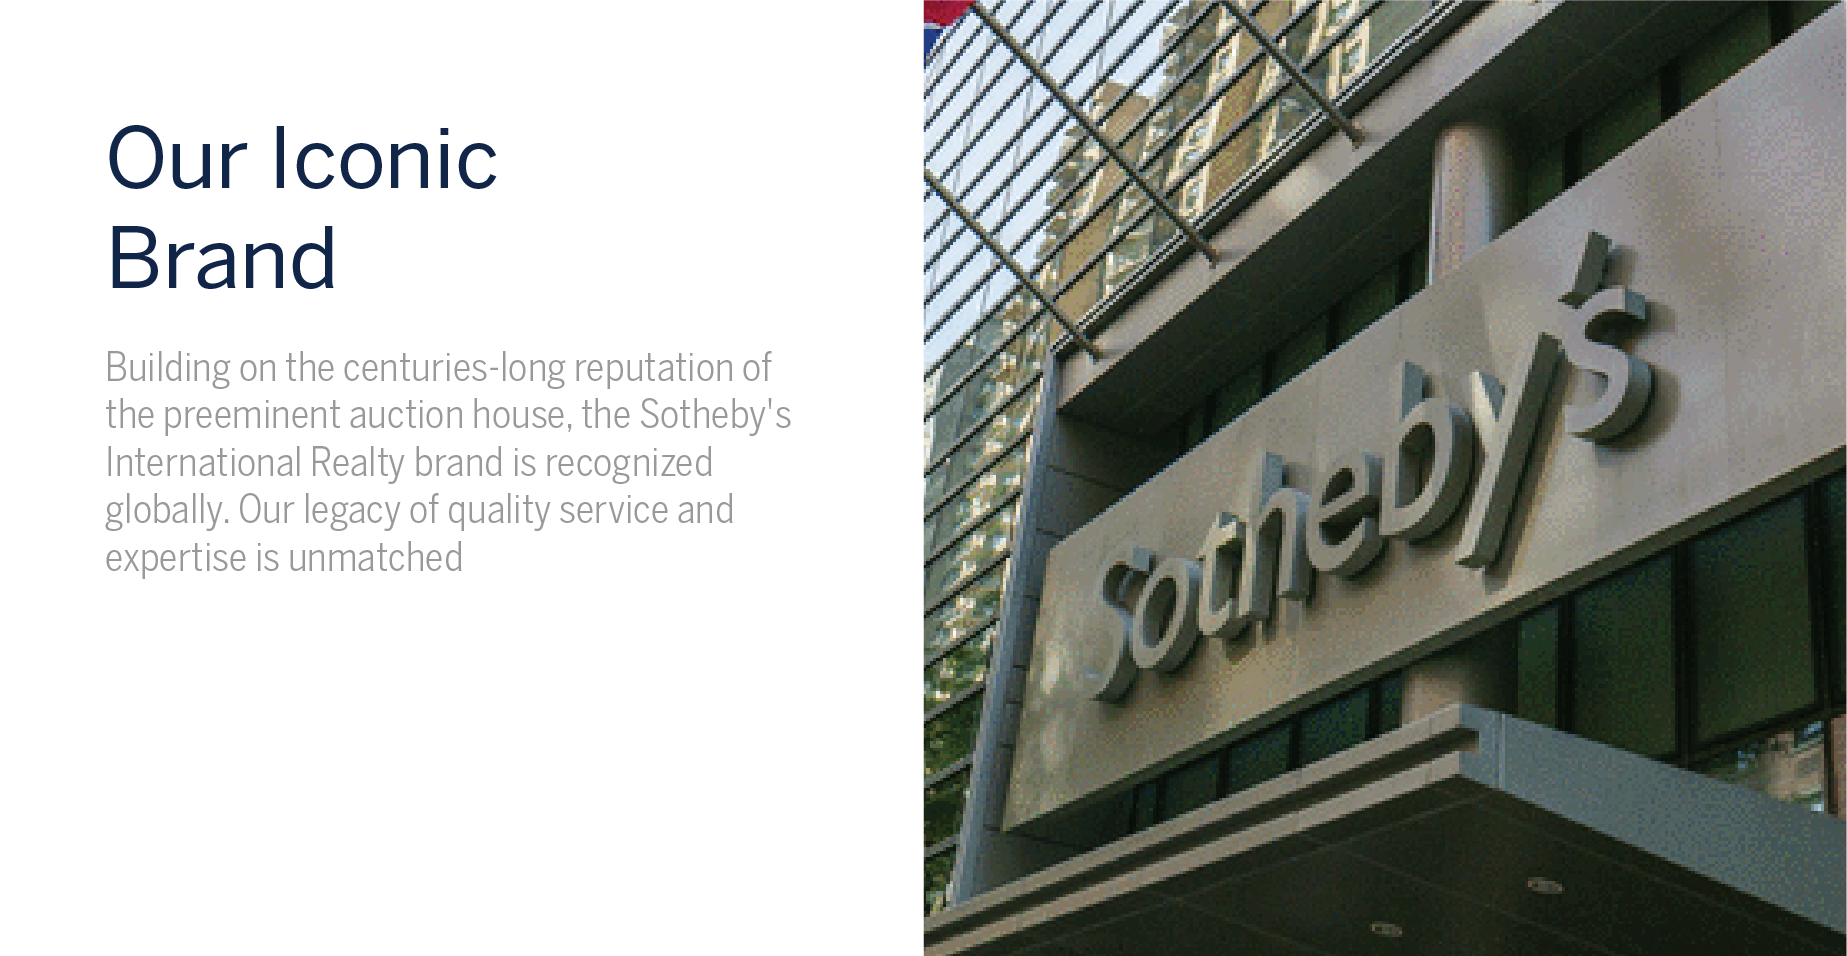 Our Iconic Brand - Building on the centuries-long reputation of the preeminent auction house, the Sotheby's International Realty brand is recognized globally. Our legacy of quality service and expertise is unmatched.